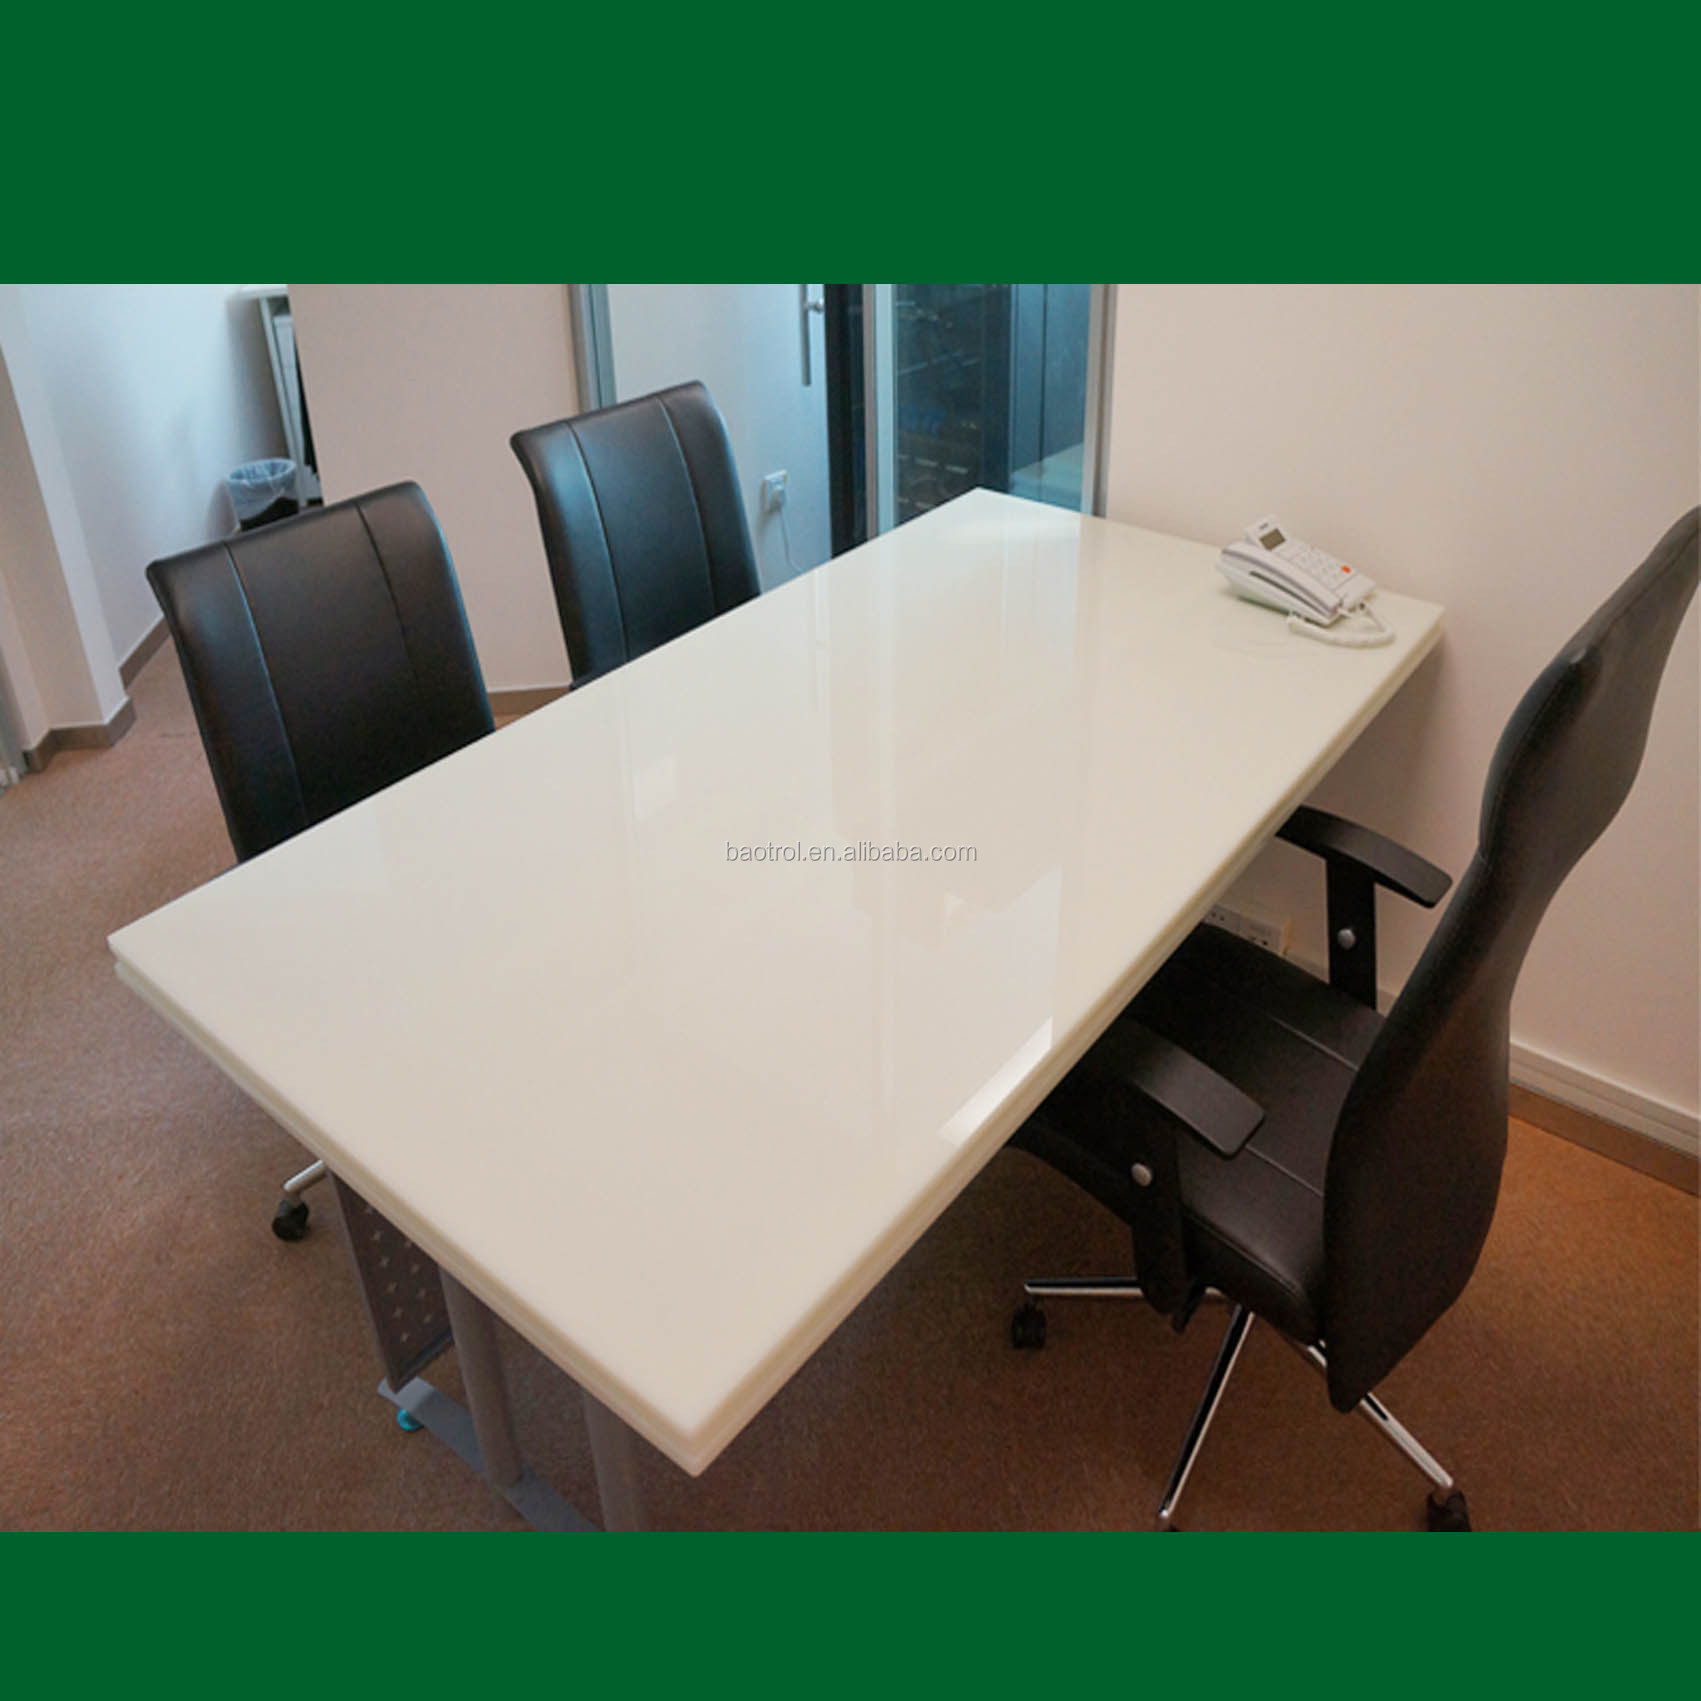 Corian Tabletop Furniture Corian Tabletop Furniture Suppliers and